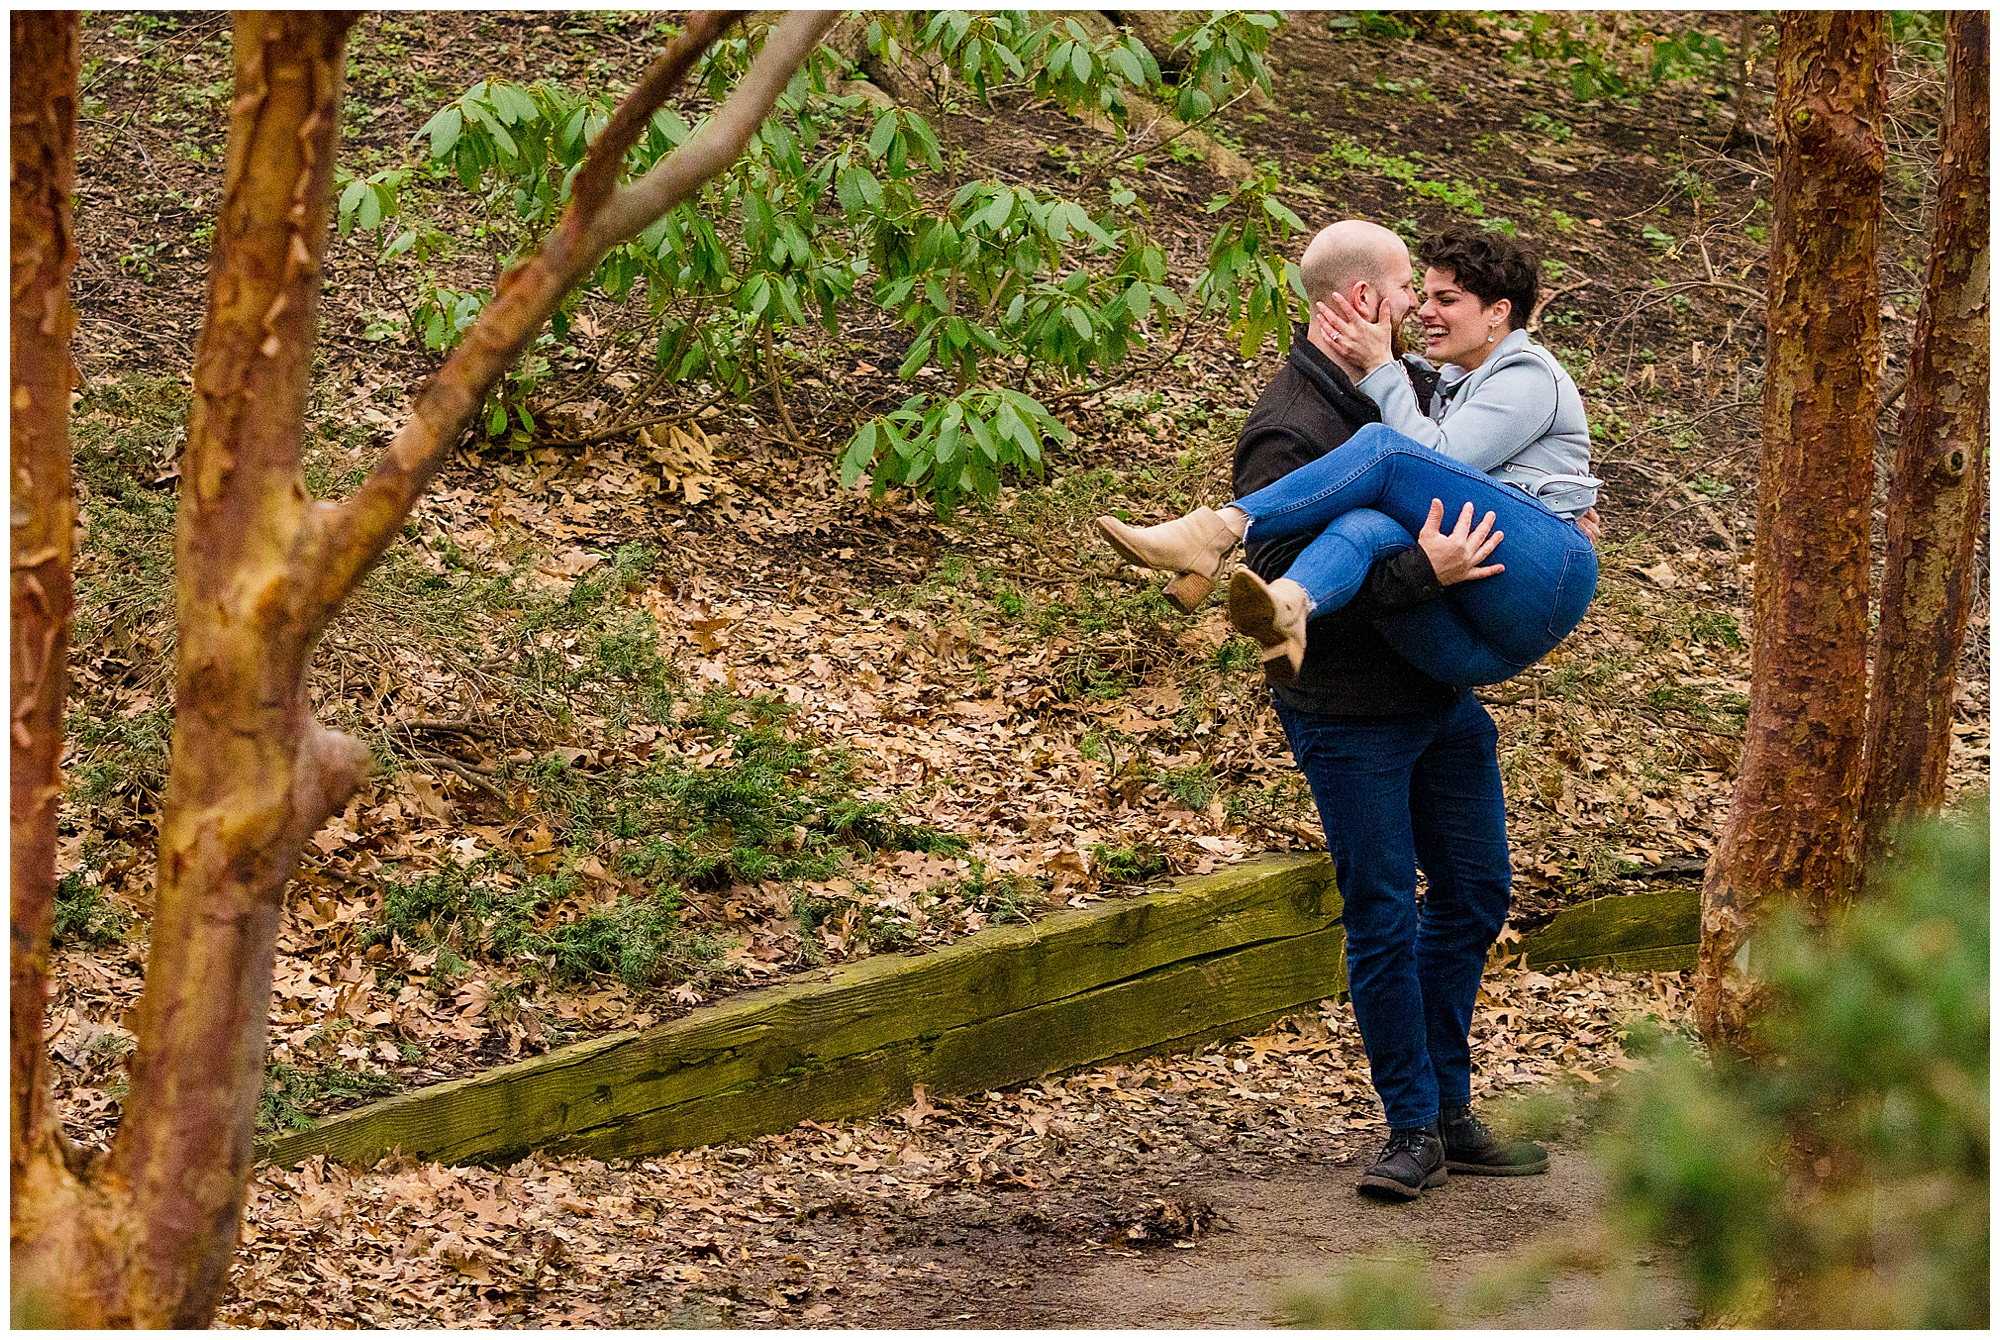 A man carries his fiance in highland park after he just proposed